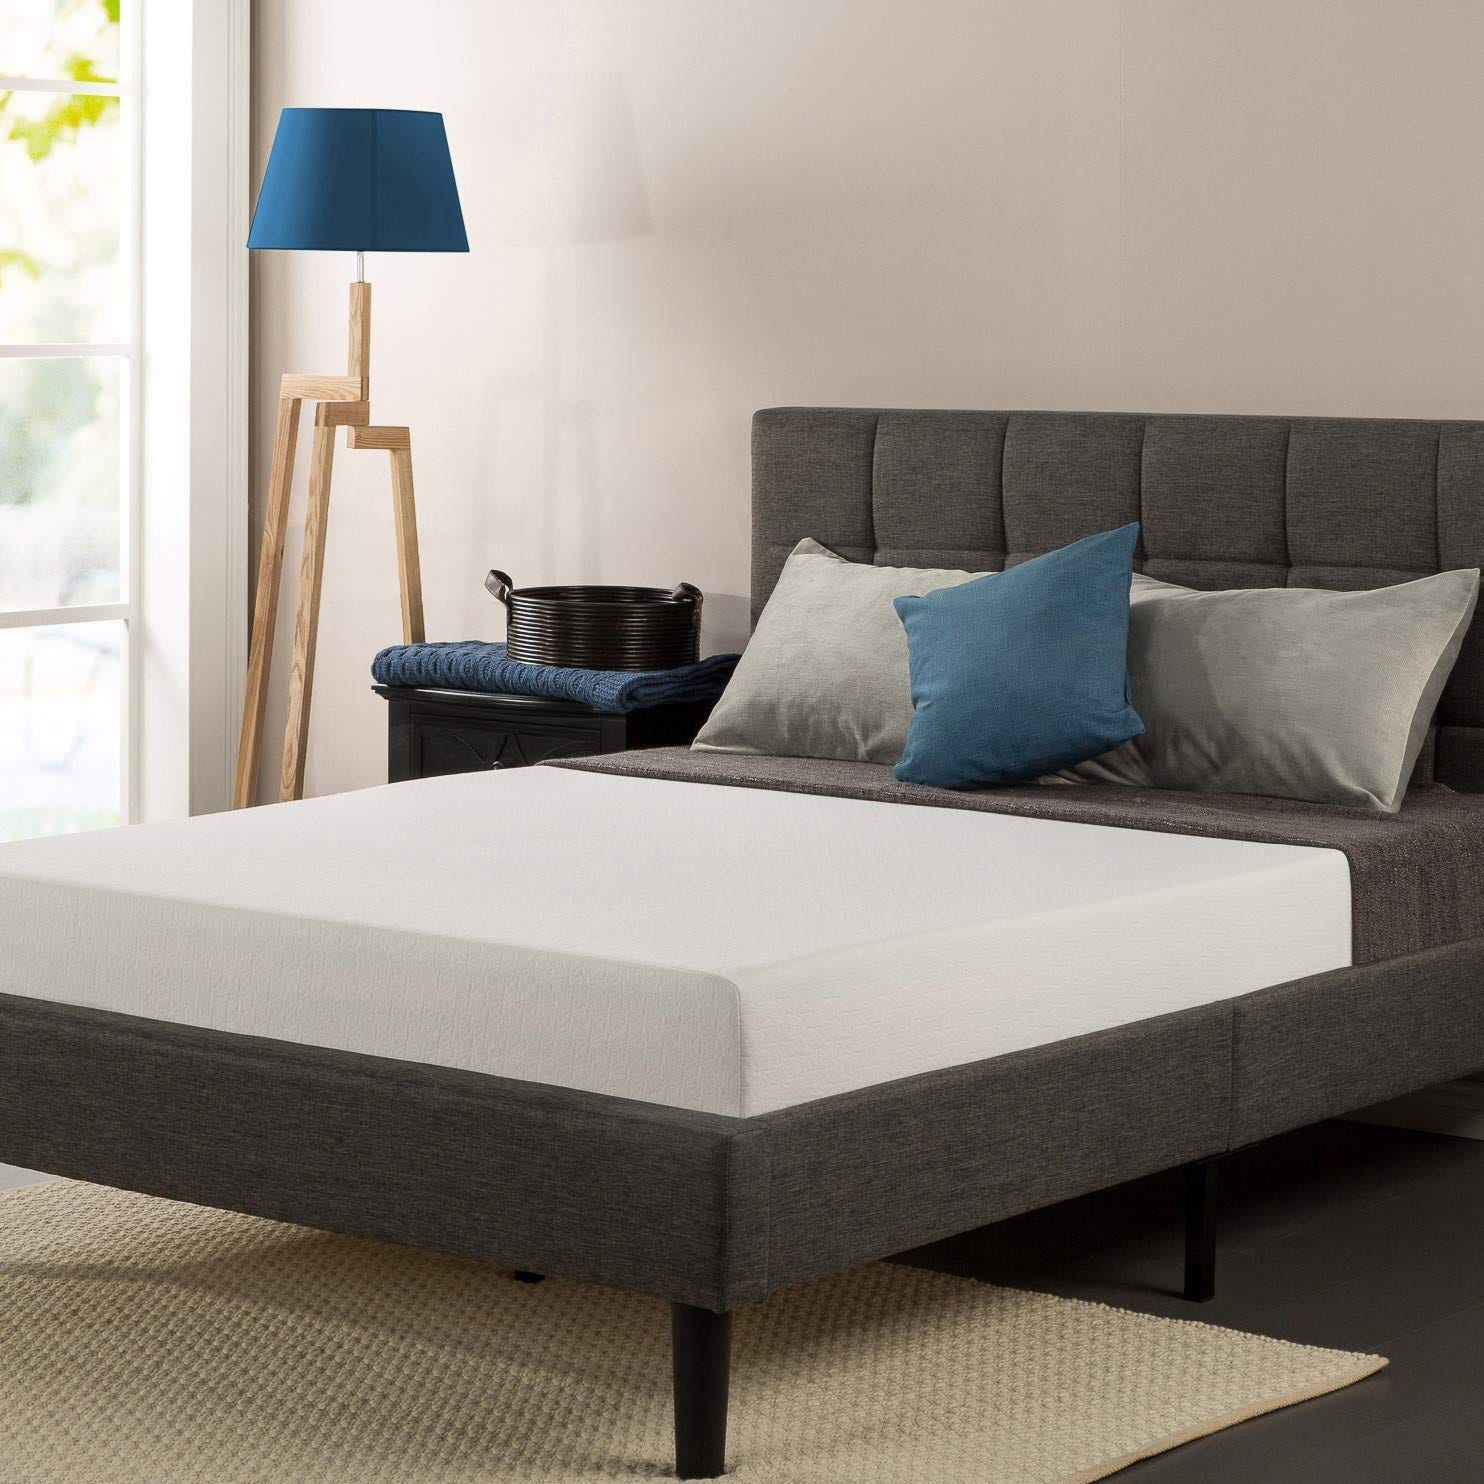 zinus, ultima, mattress, foam mattress, cheap, inexpensive